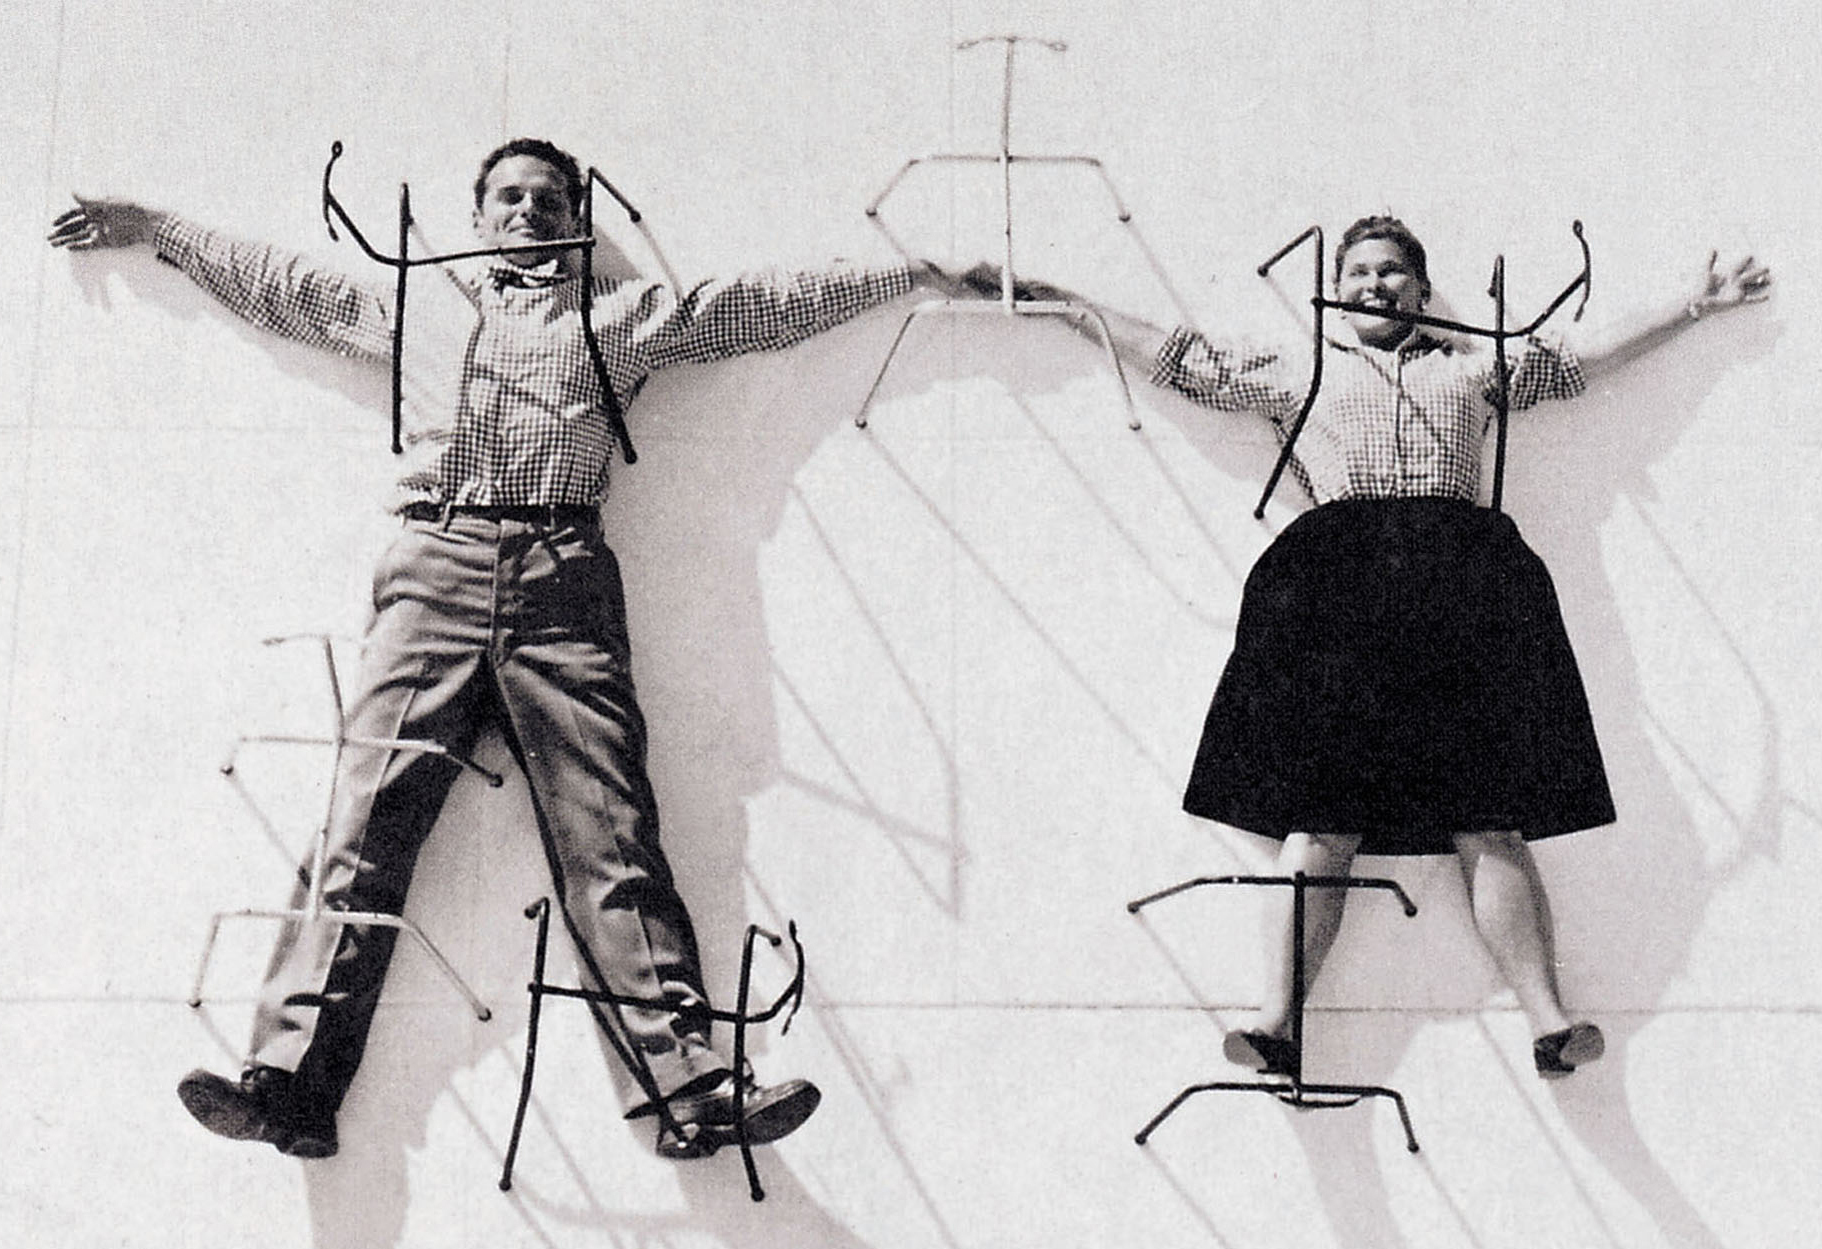 Ray And Charles Eames The World Of Charles And Ray Eames At The Barbican Penny